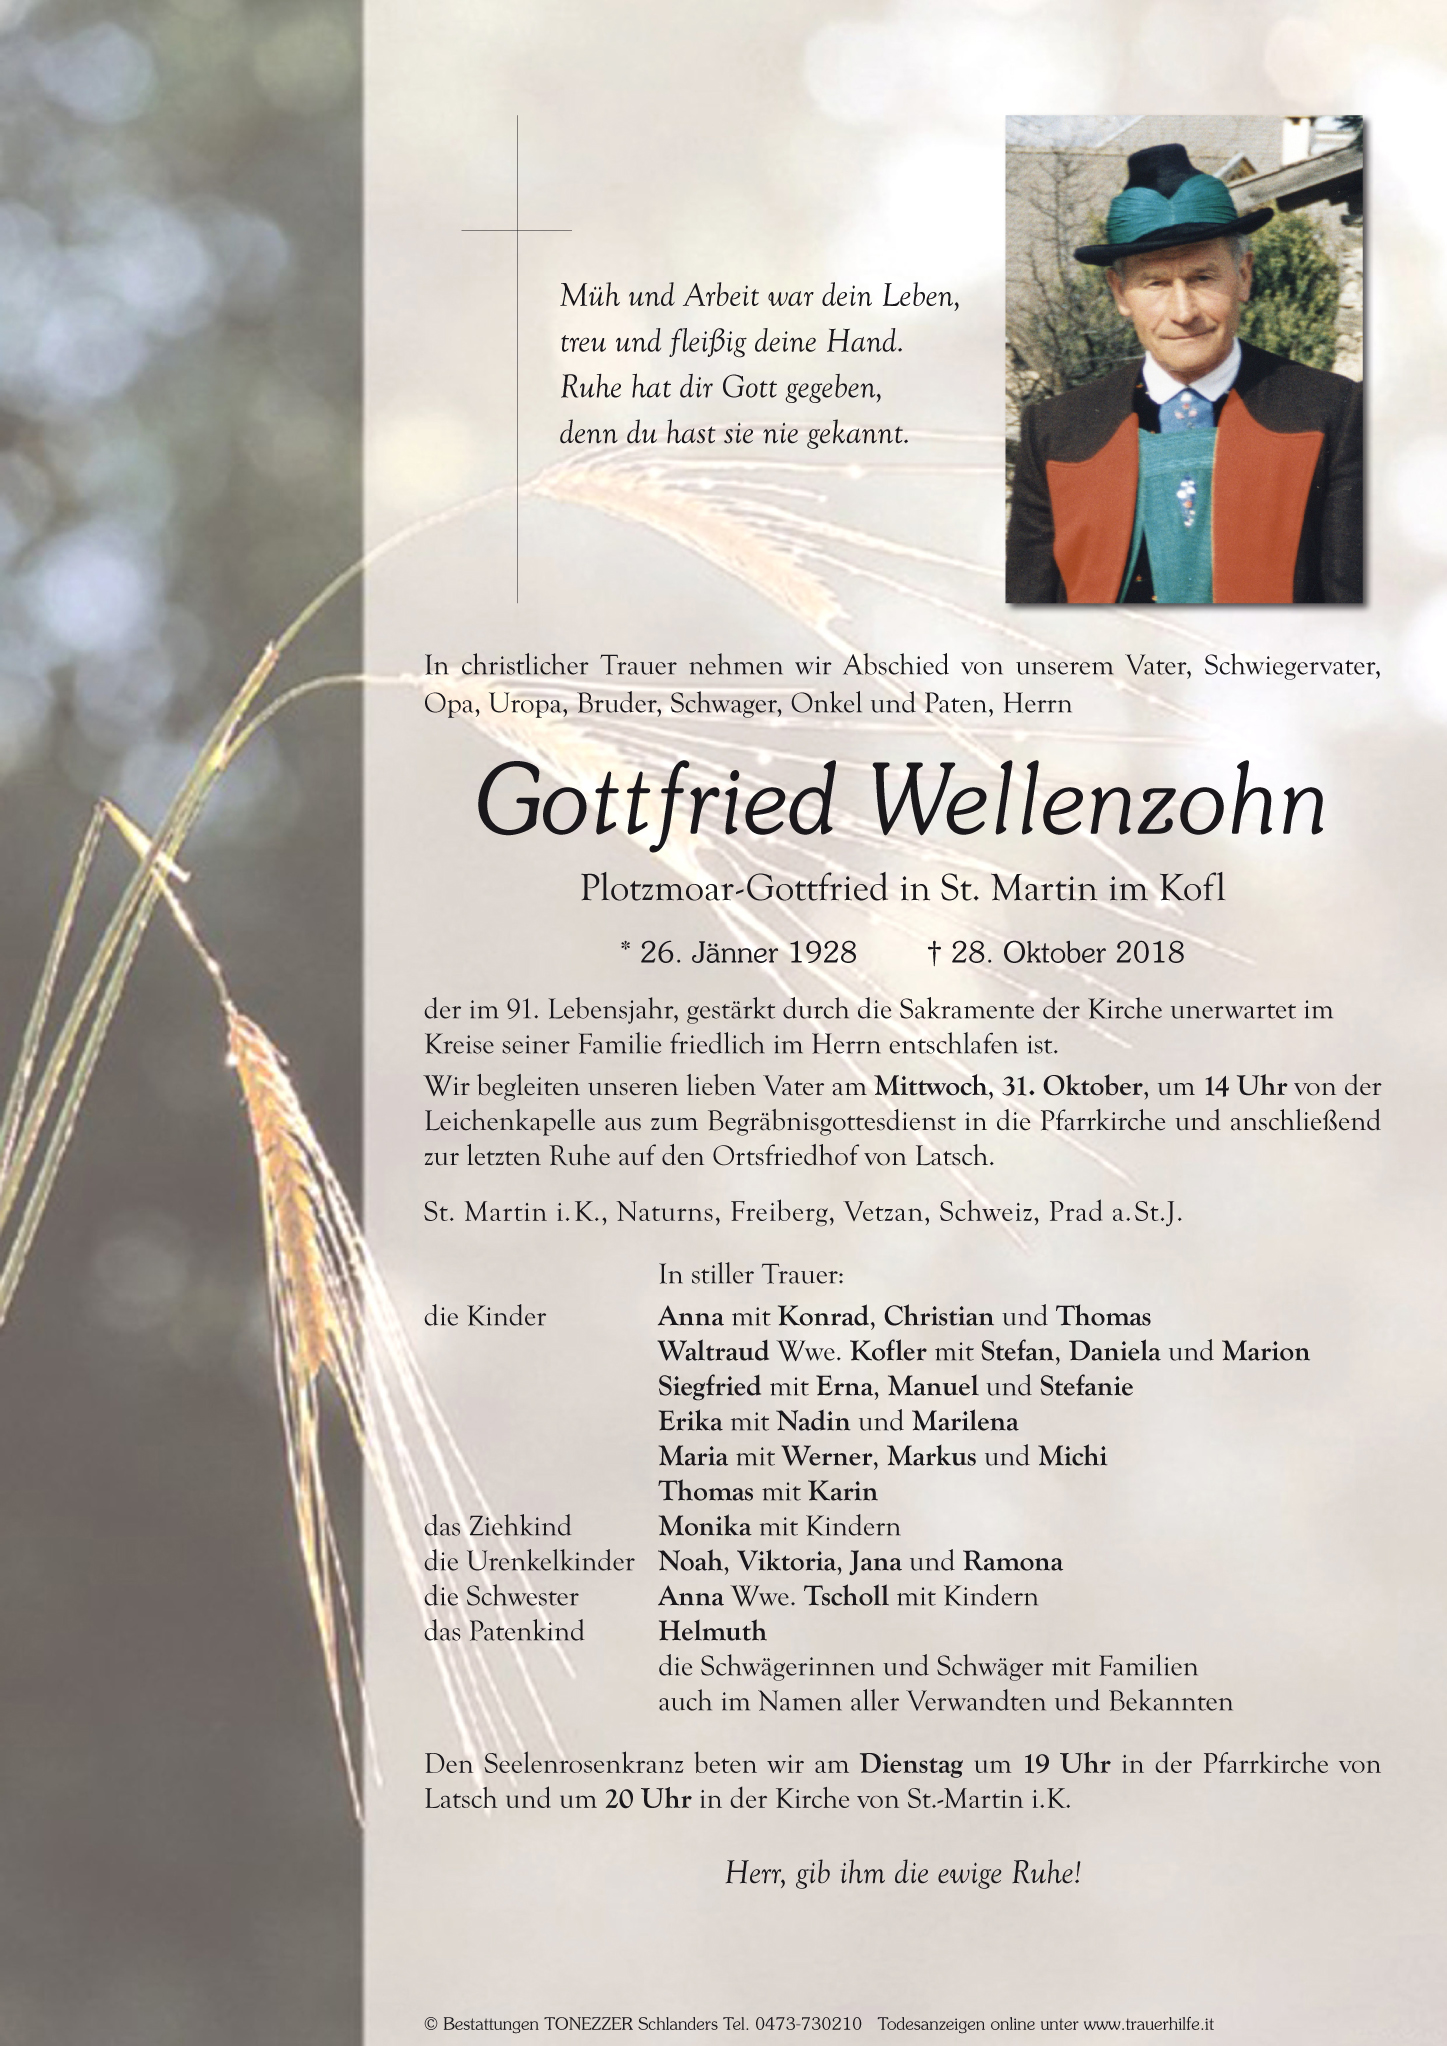 Gottfried Wellenzohn